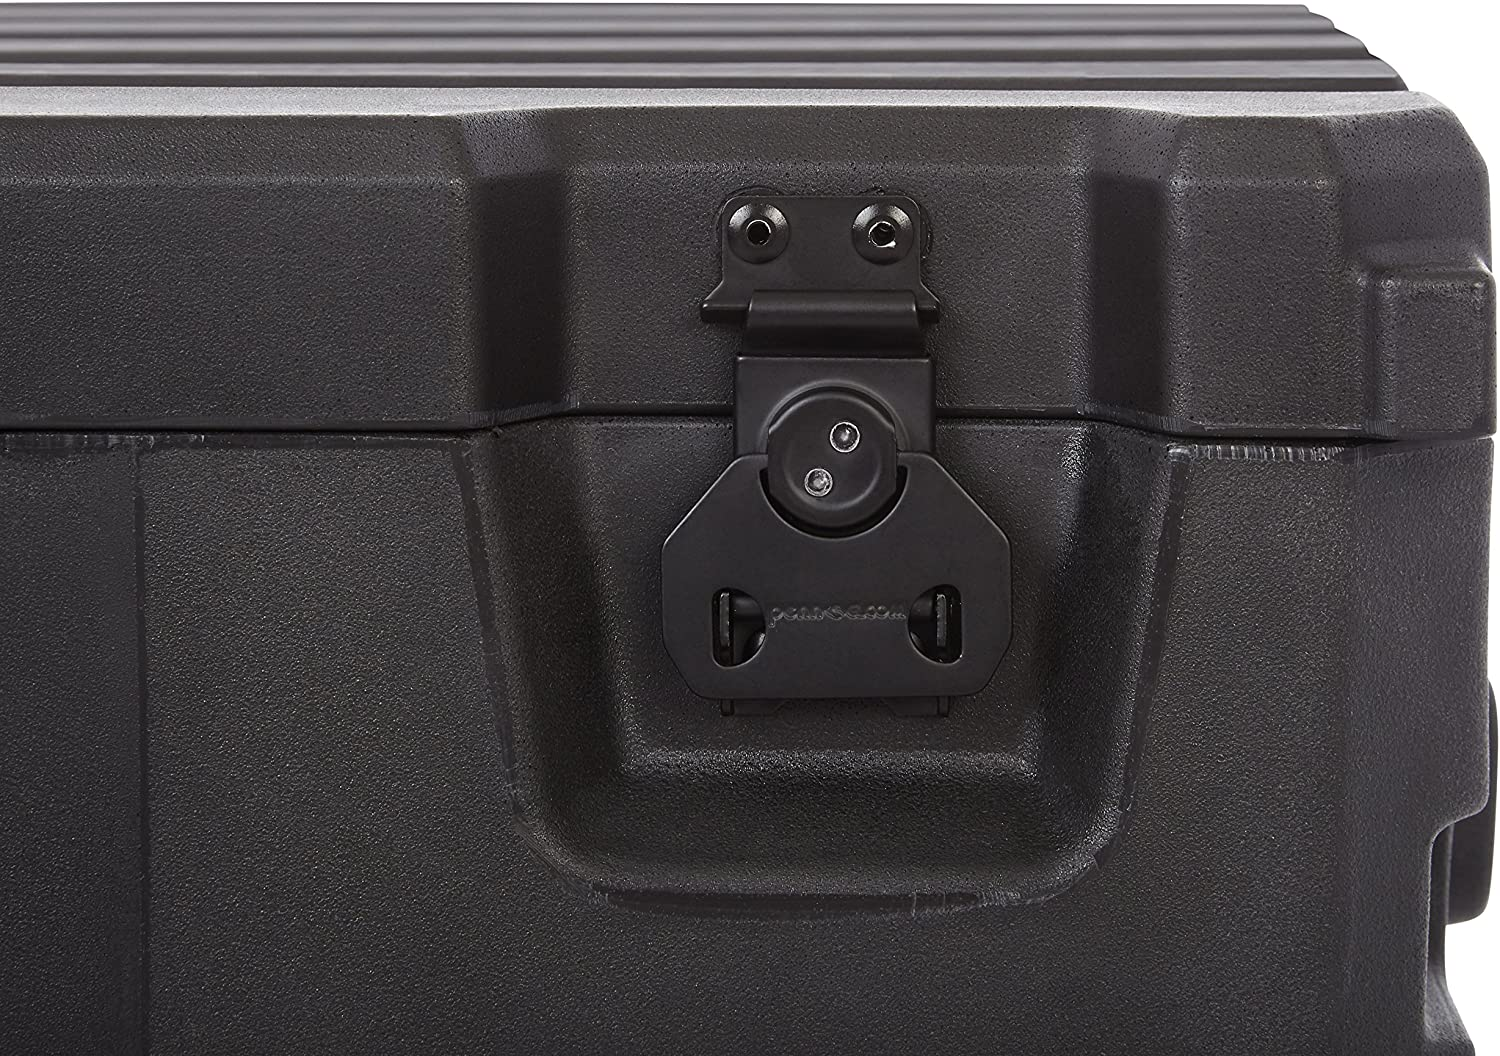 G-PRO-6U-13 Gator Cases Pro Series Rotationally Molded 6U Rack Case with Shallow 13 Depth; Made in USA